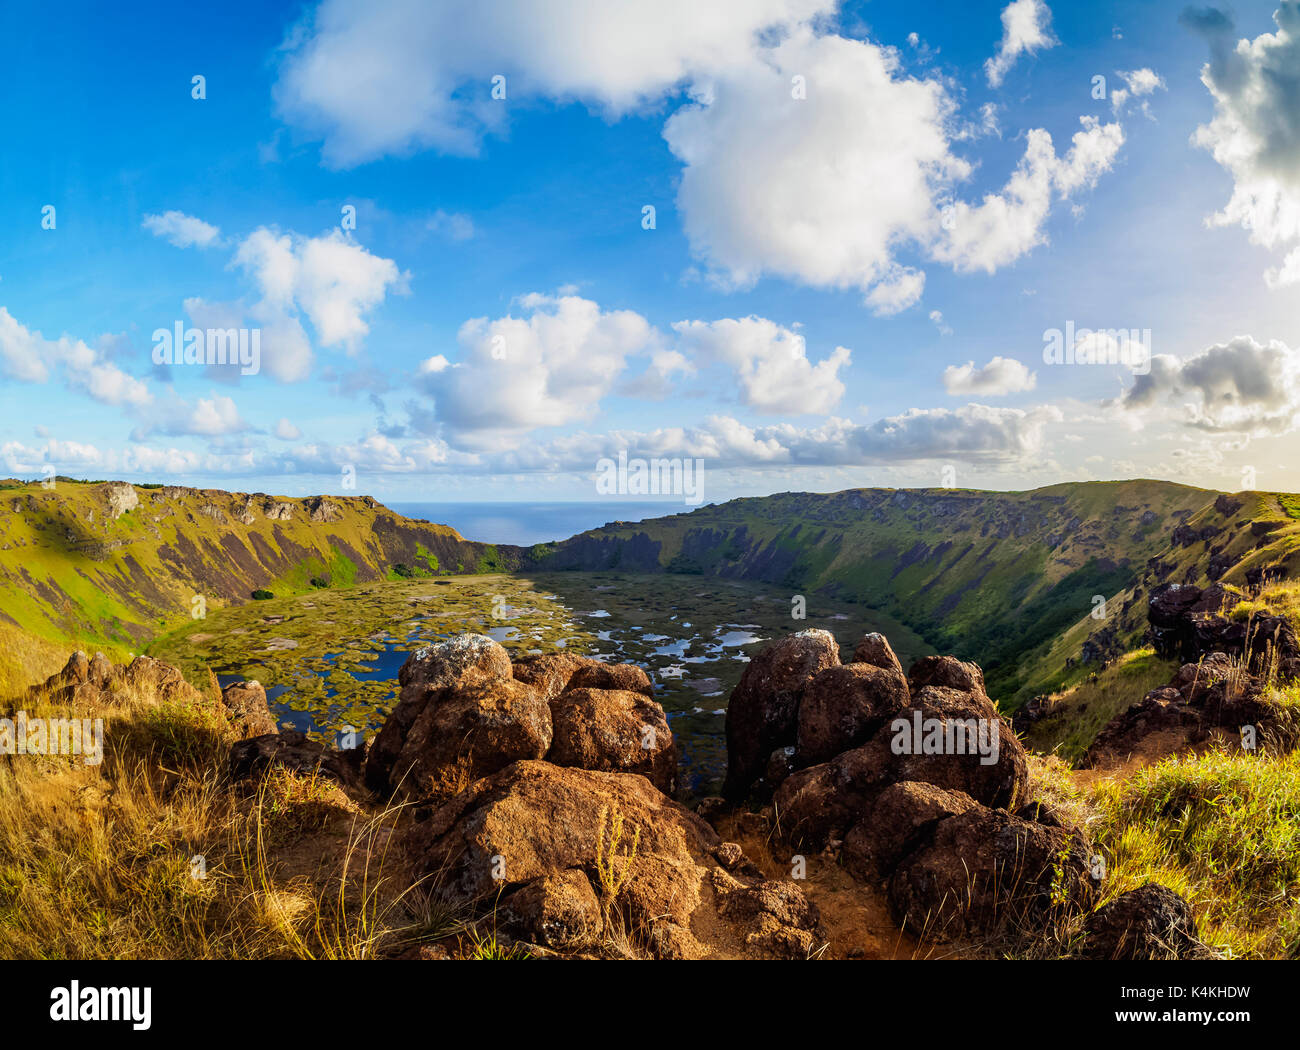 Crater of Rano Kau Volcano, Easter Island, Chile - Stock Image